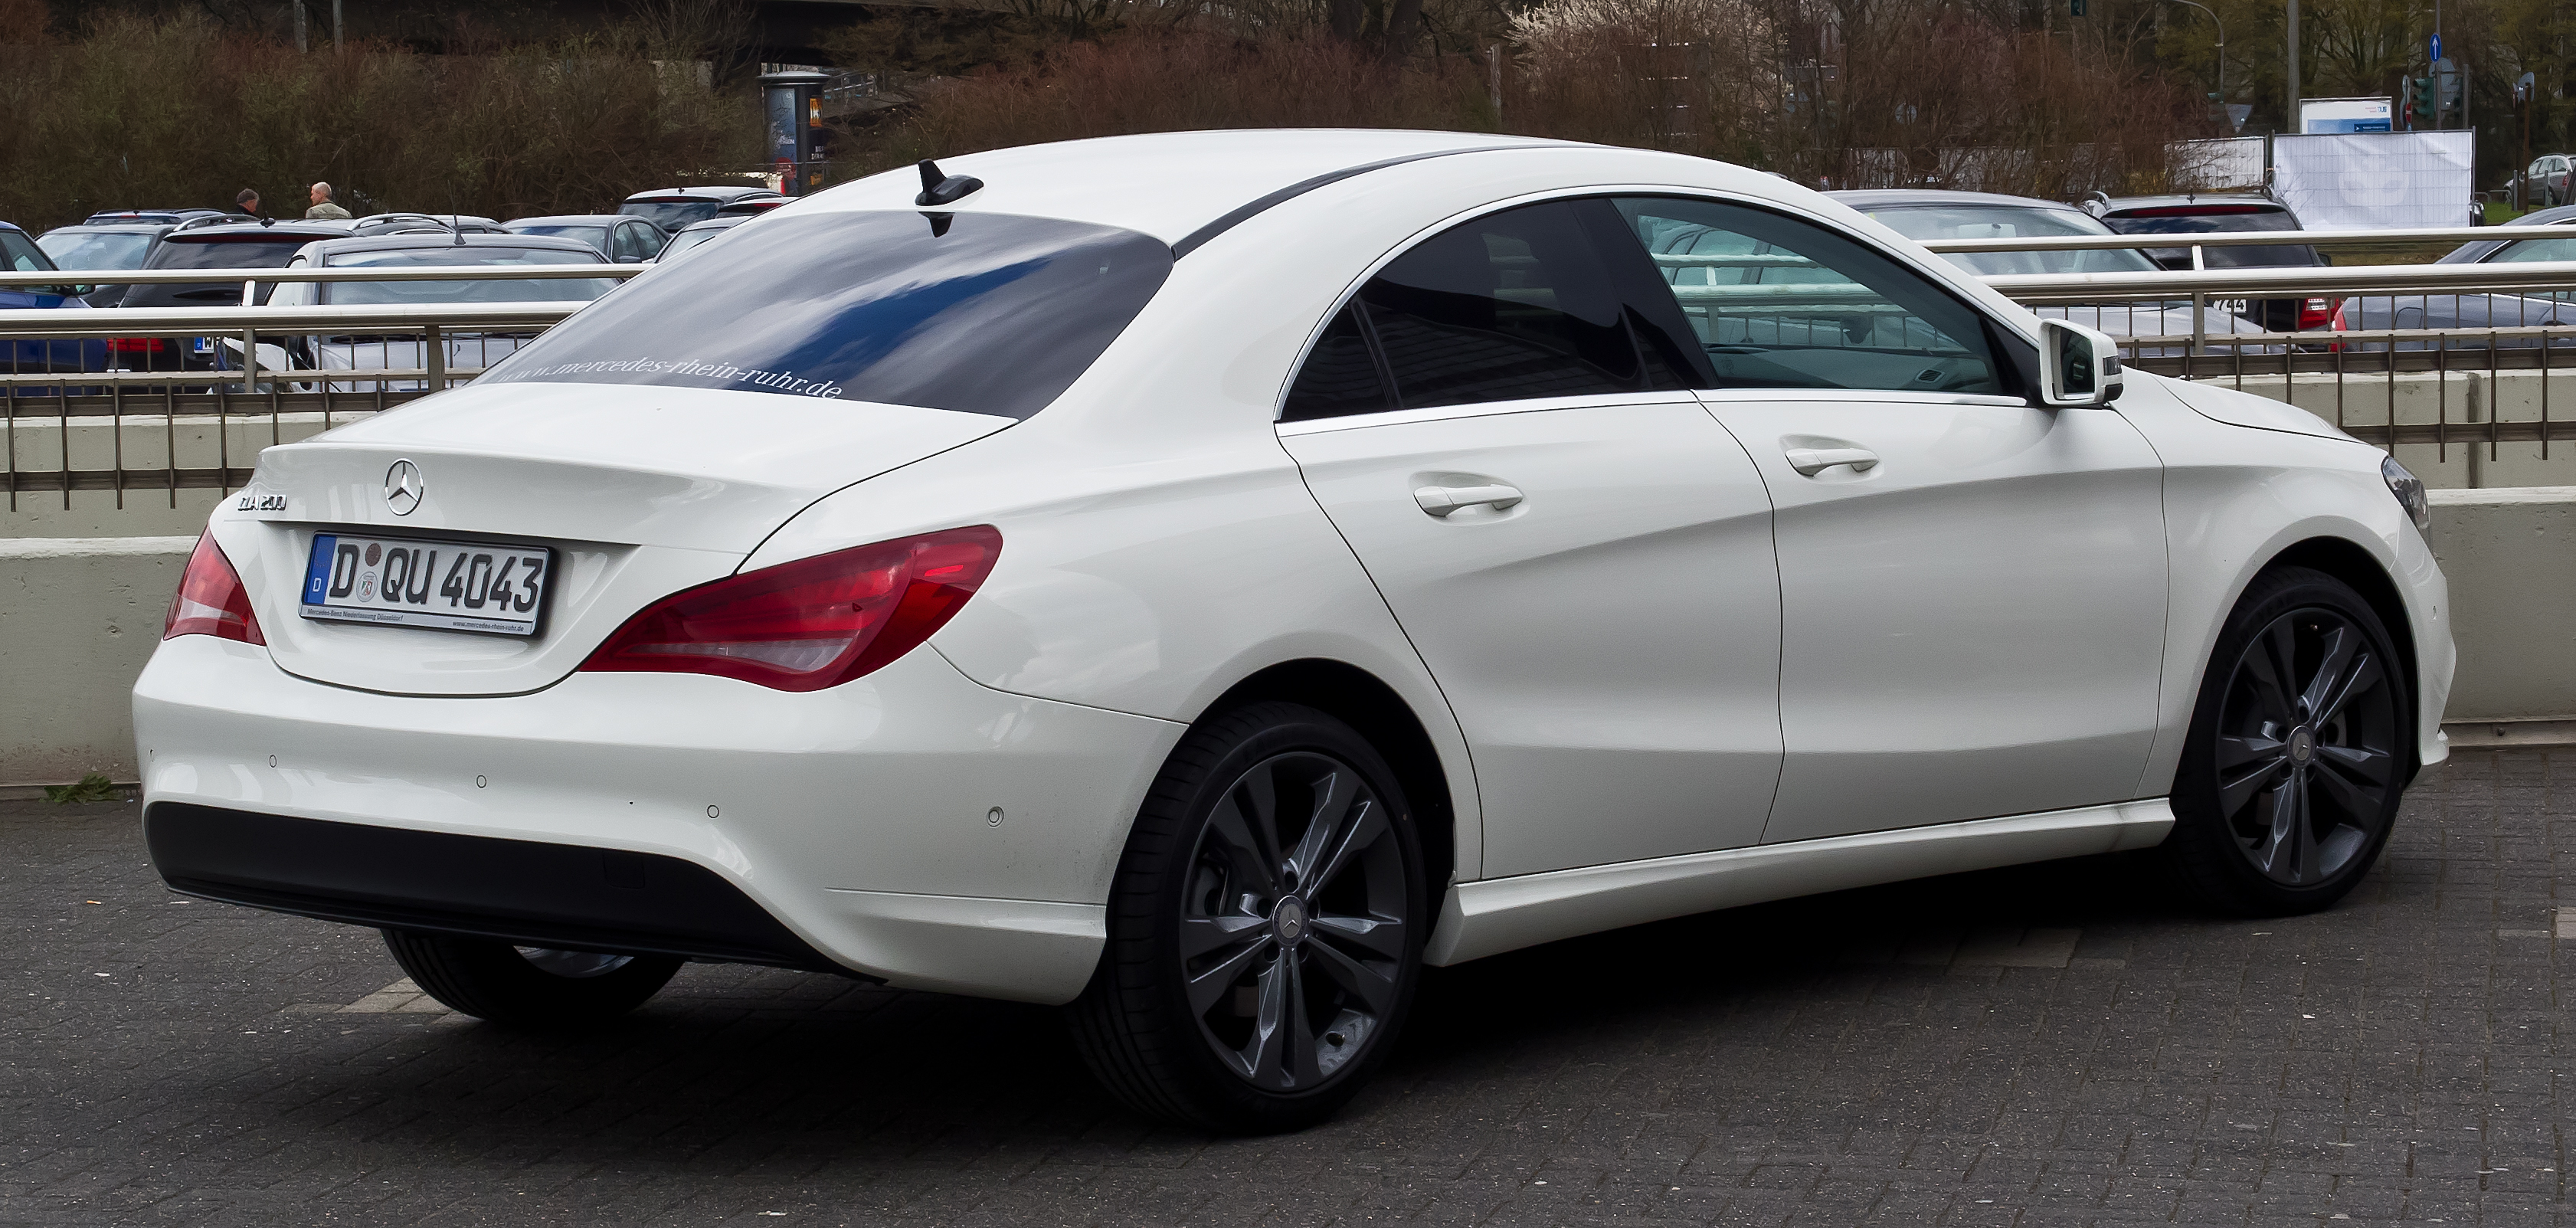 mercedes benz cla class prices in pakistan, pictures and reviews